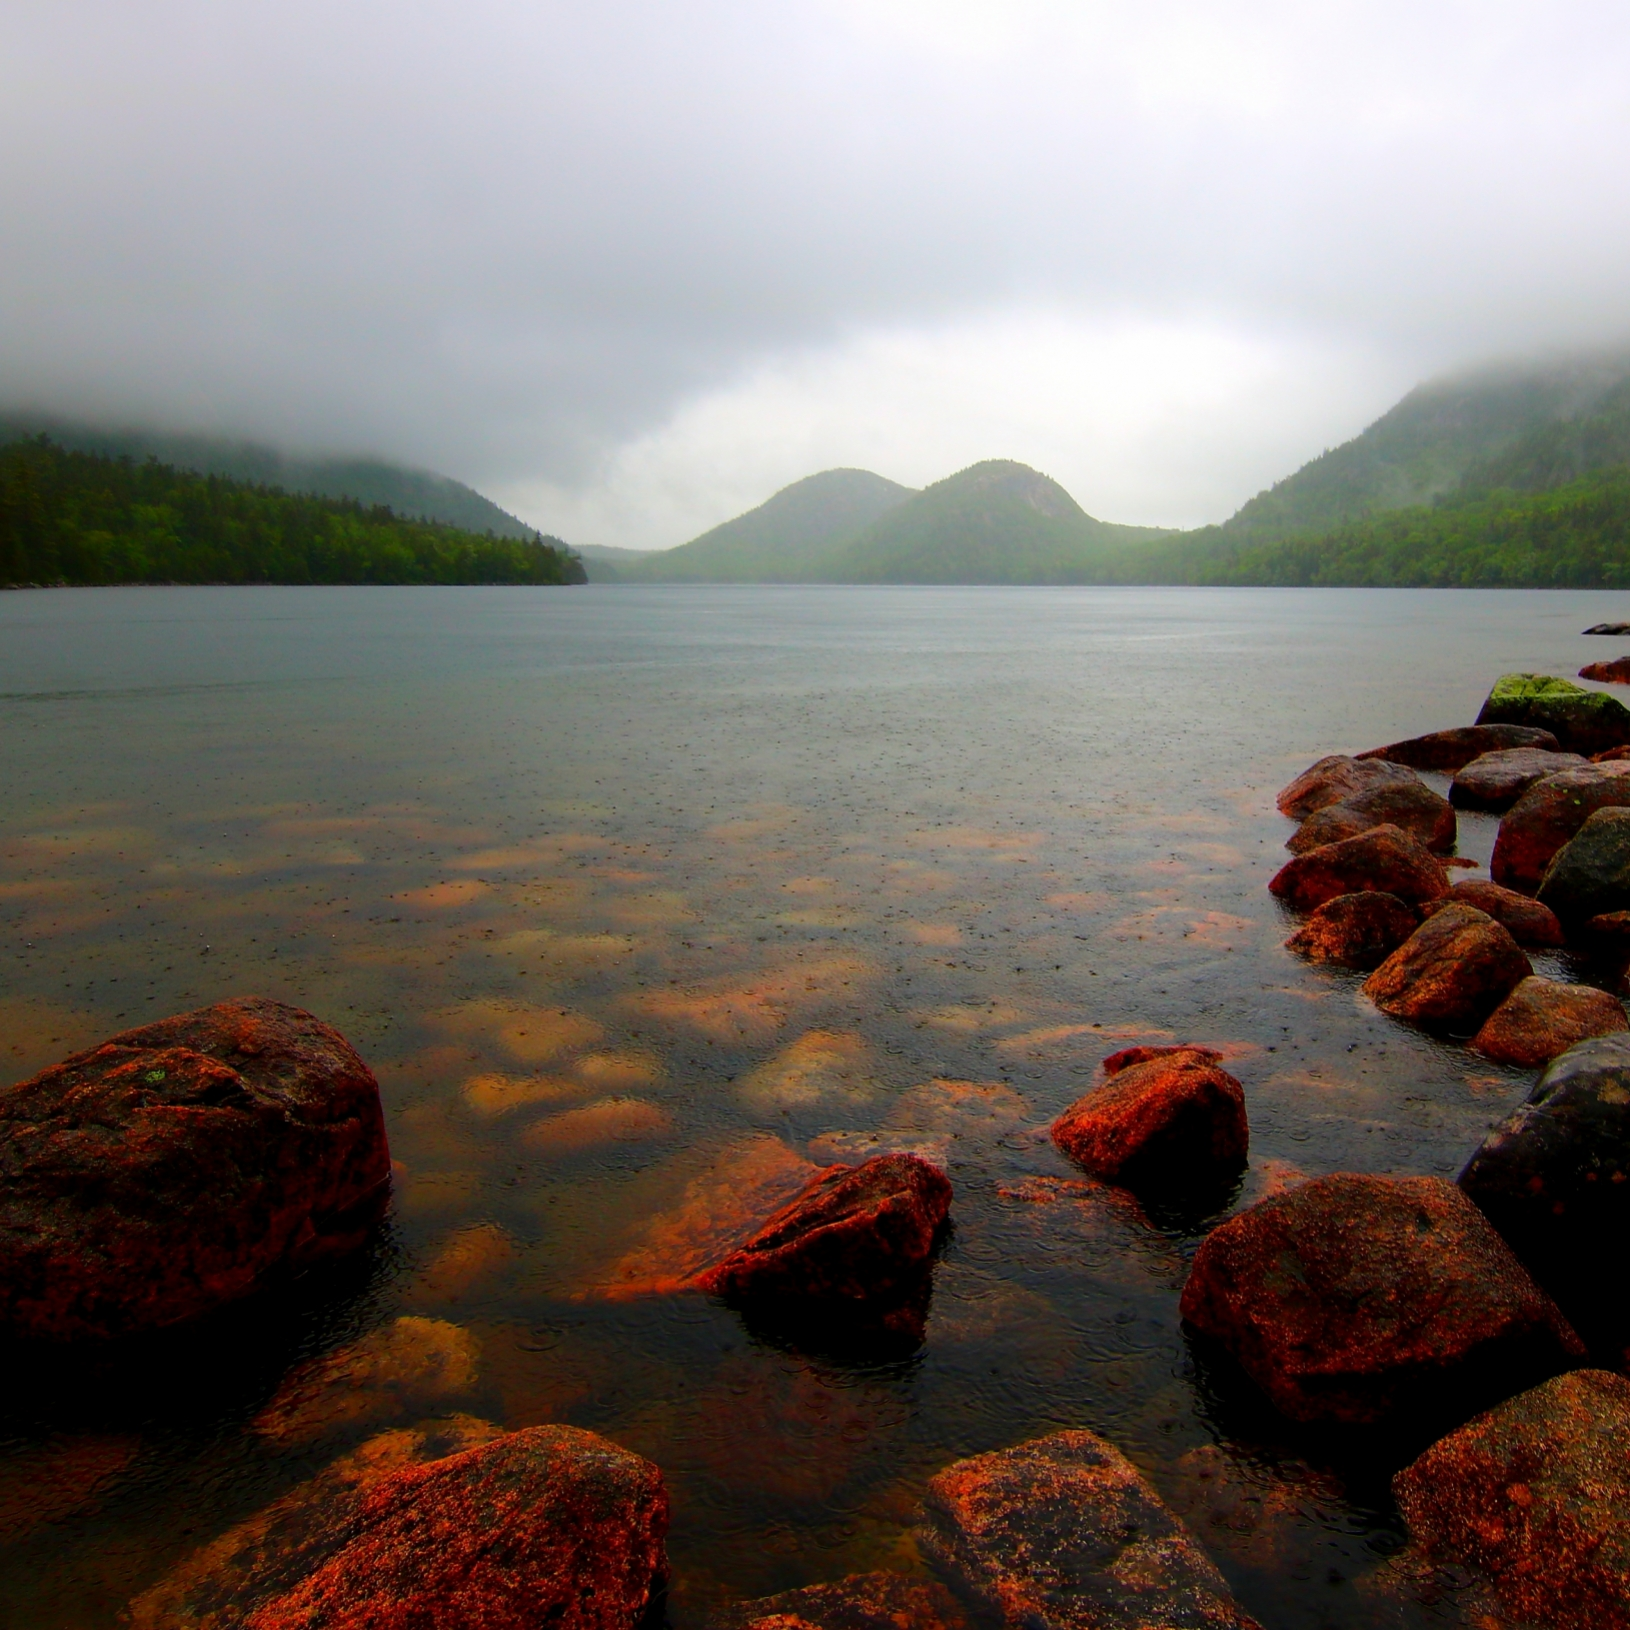 landscape letsexplore light weather water clouds adventure lake trees nature rain thebubbles acadianationalpark